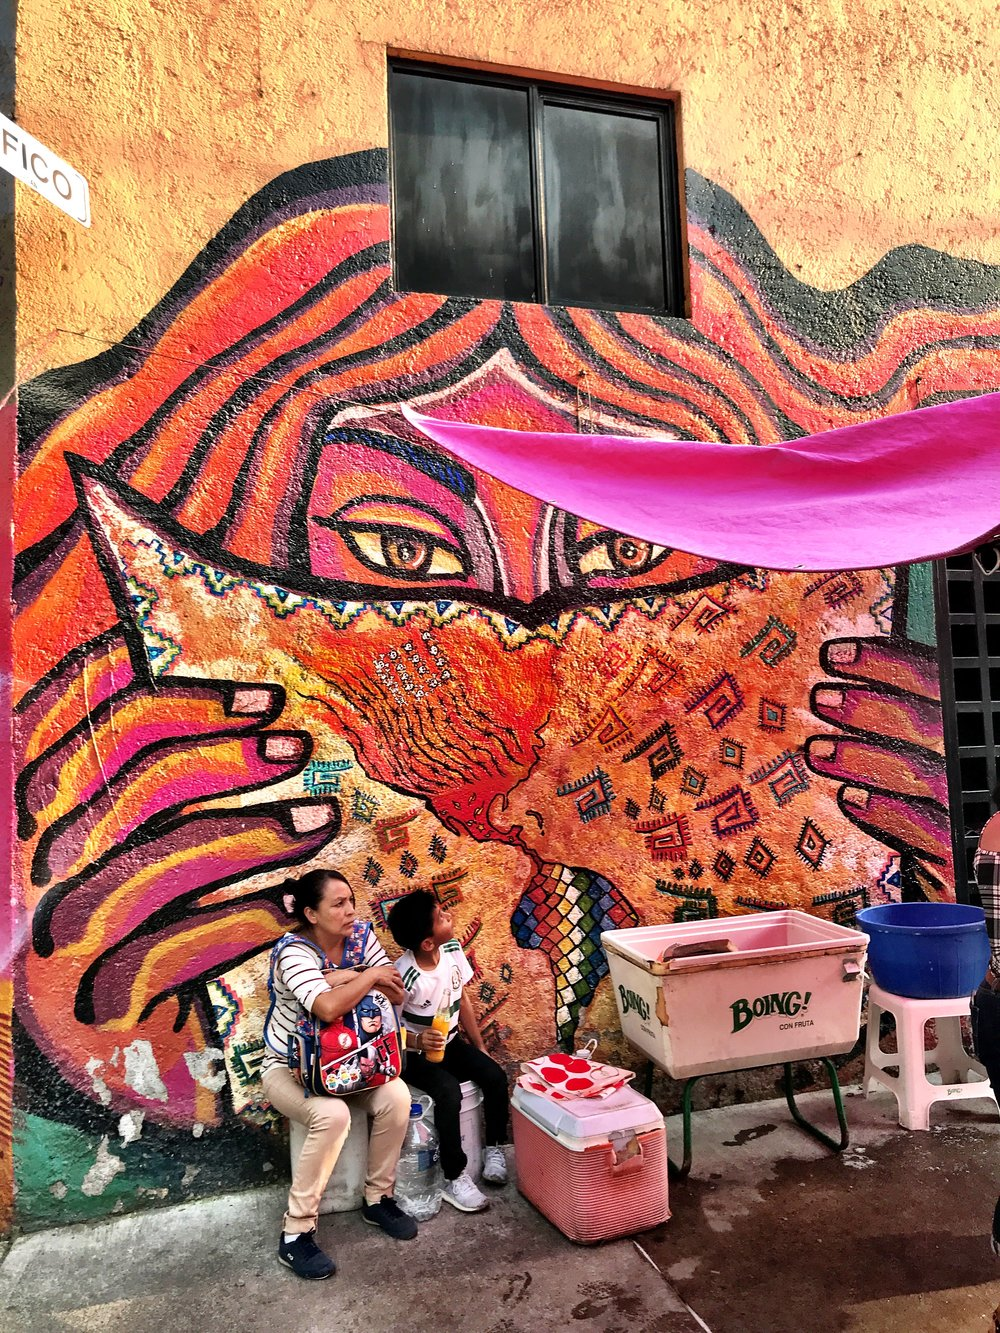 A colorful mural across from Frida Kahlo Park caught our eye